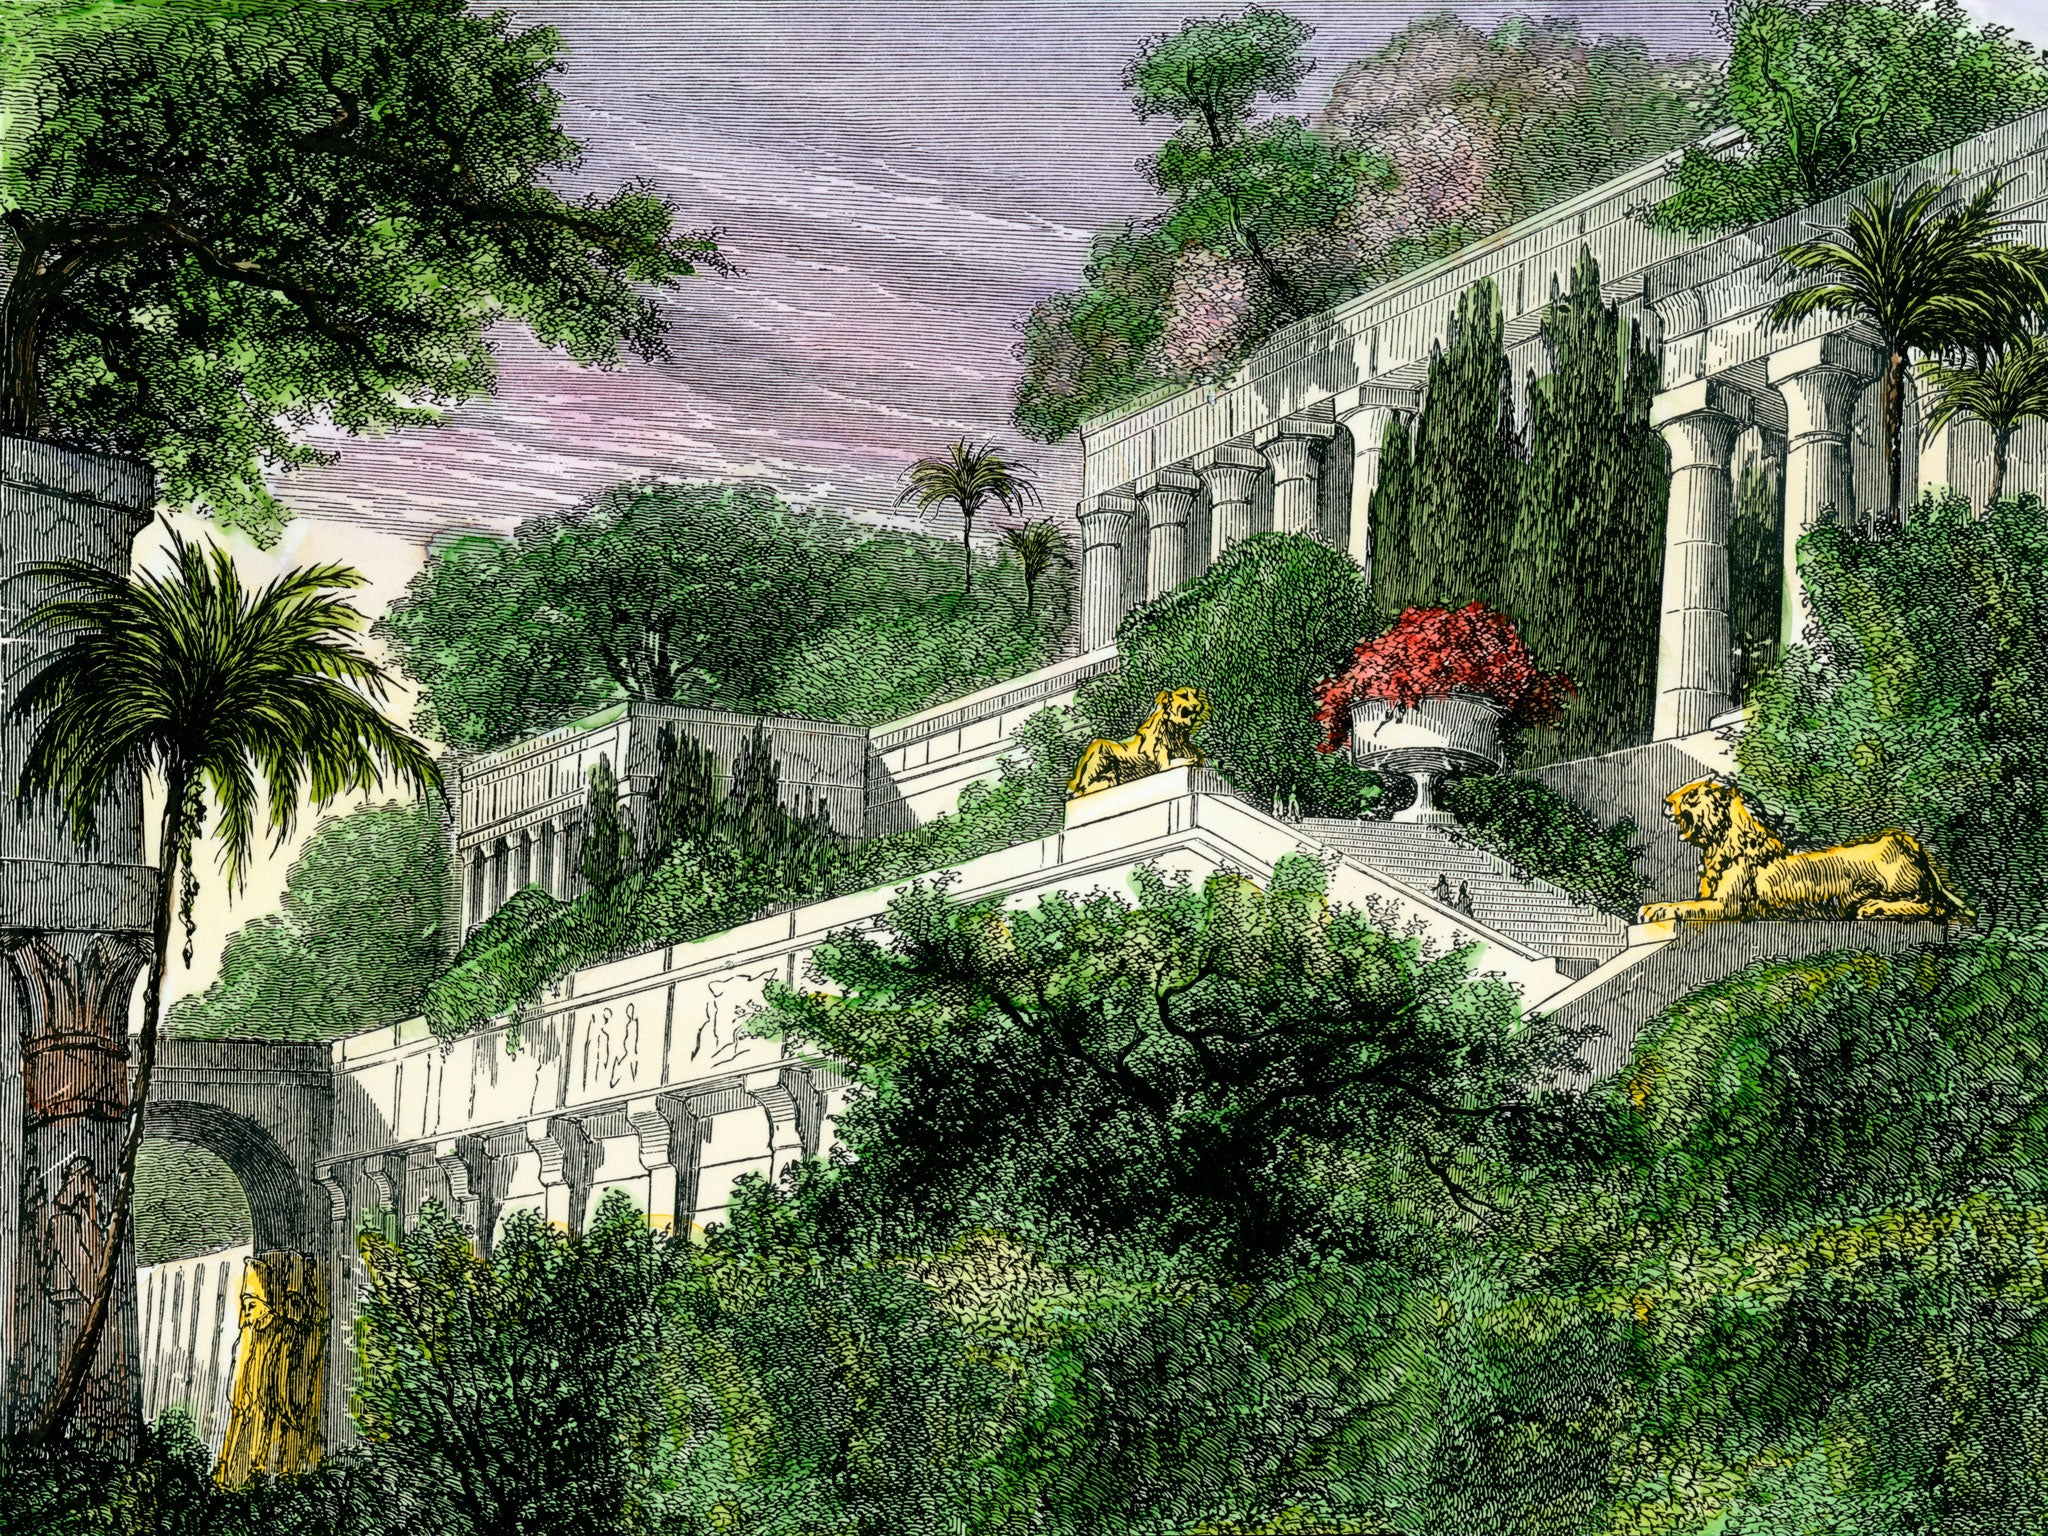 The Biggest Wonder About The Hanging Gardens Of Babylon They Weren T In Babylon The Independent